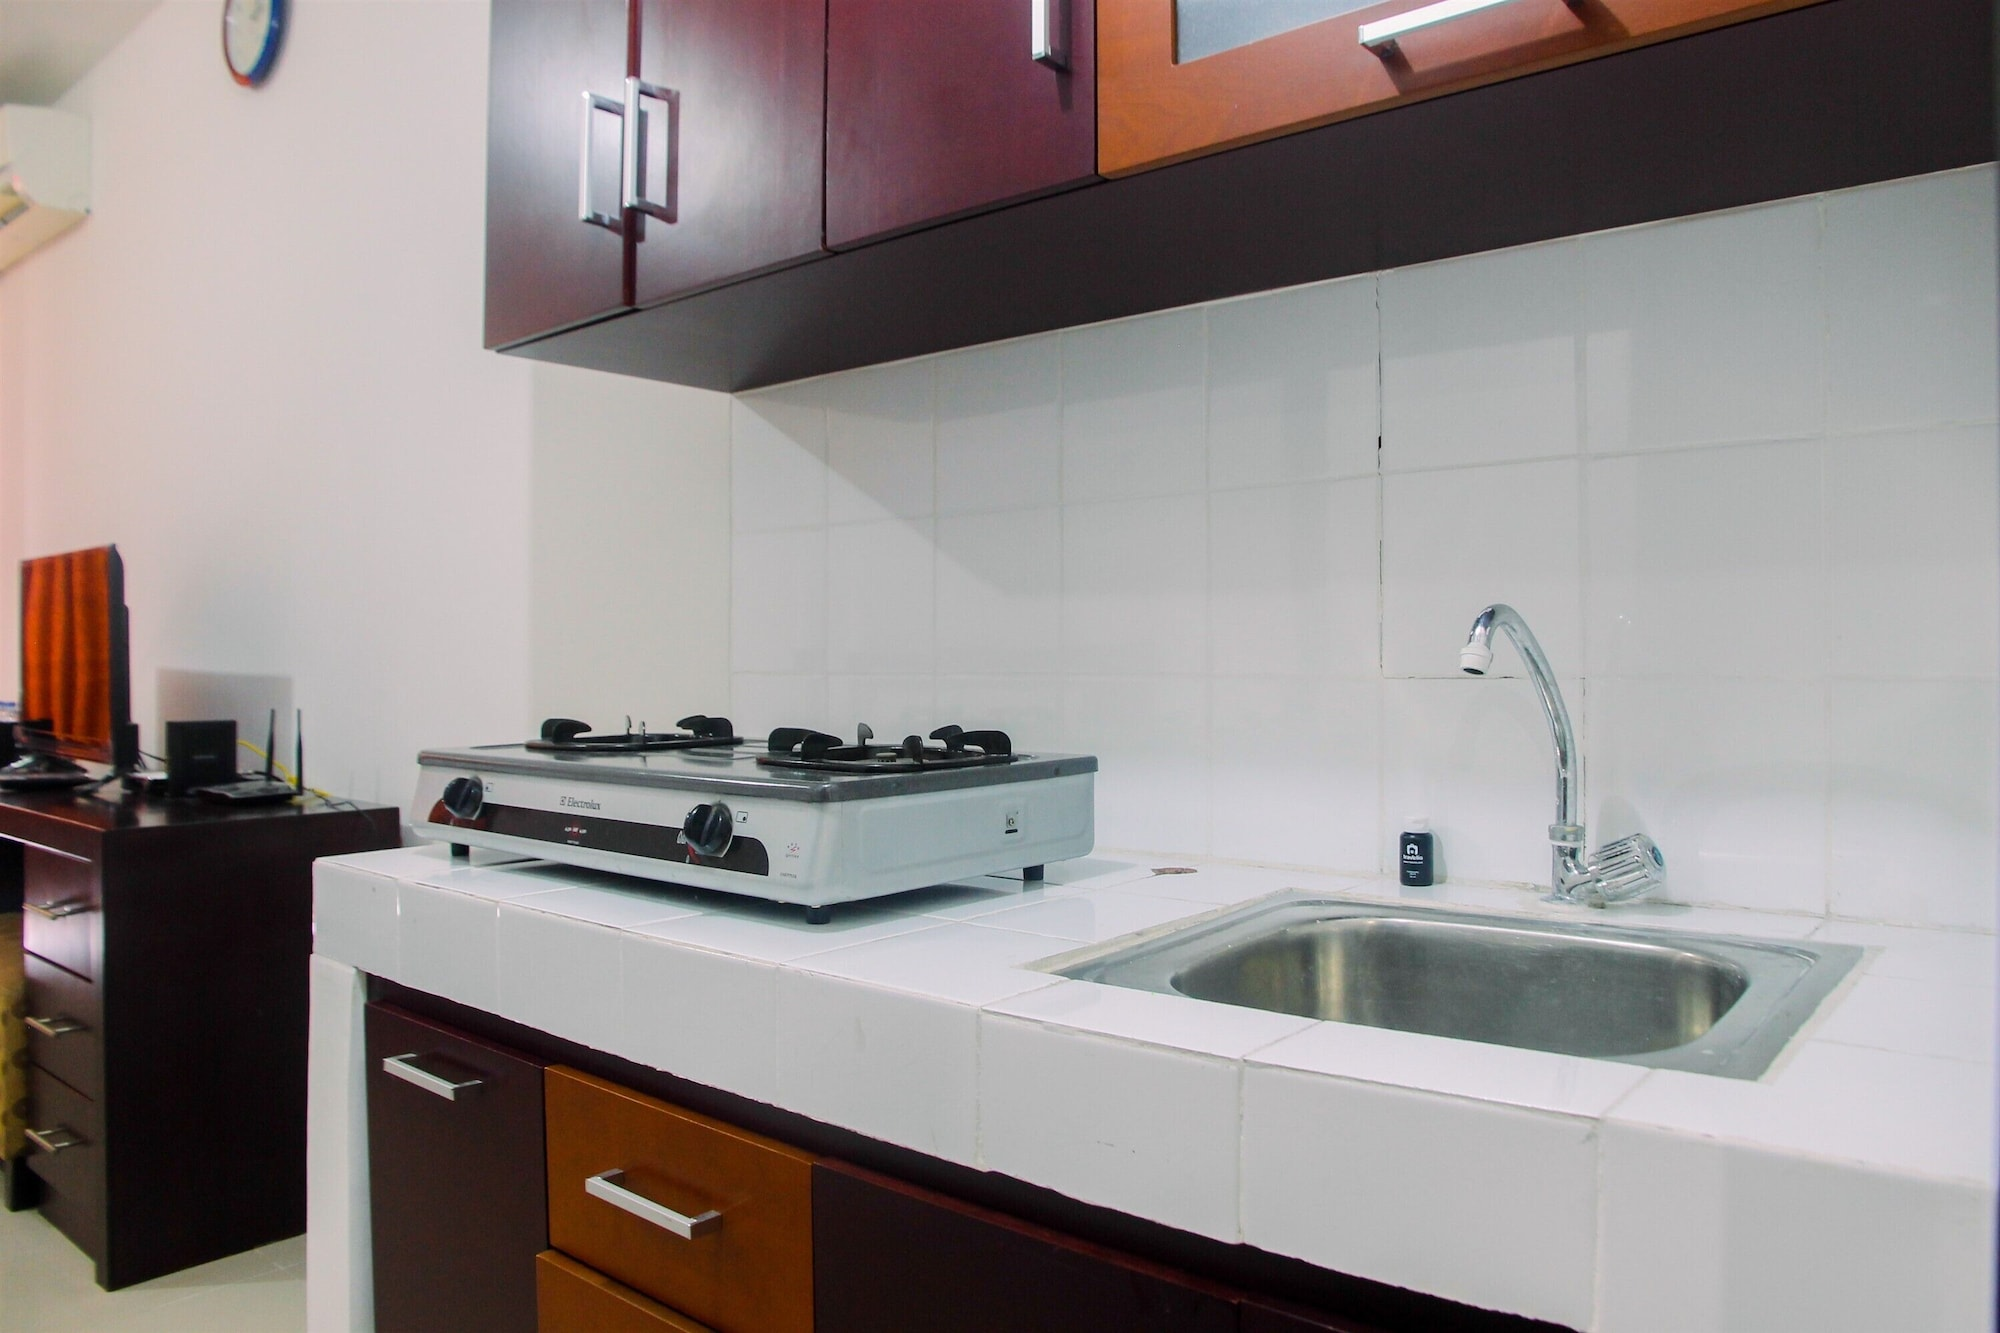 Affordable Price with City View Studio Room Park View Condominium Apartment, Depok